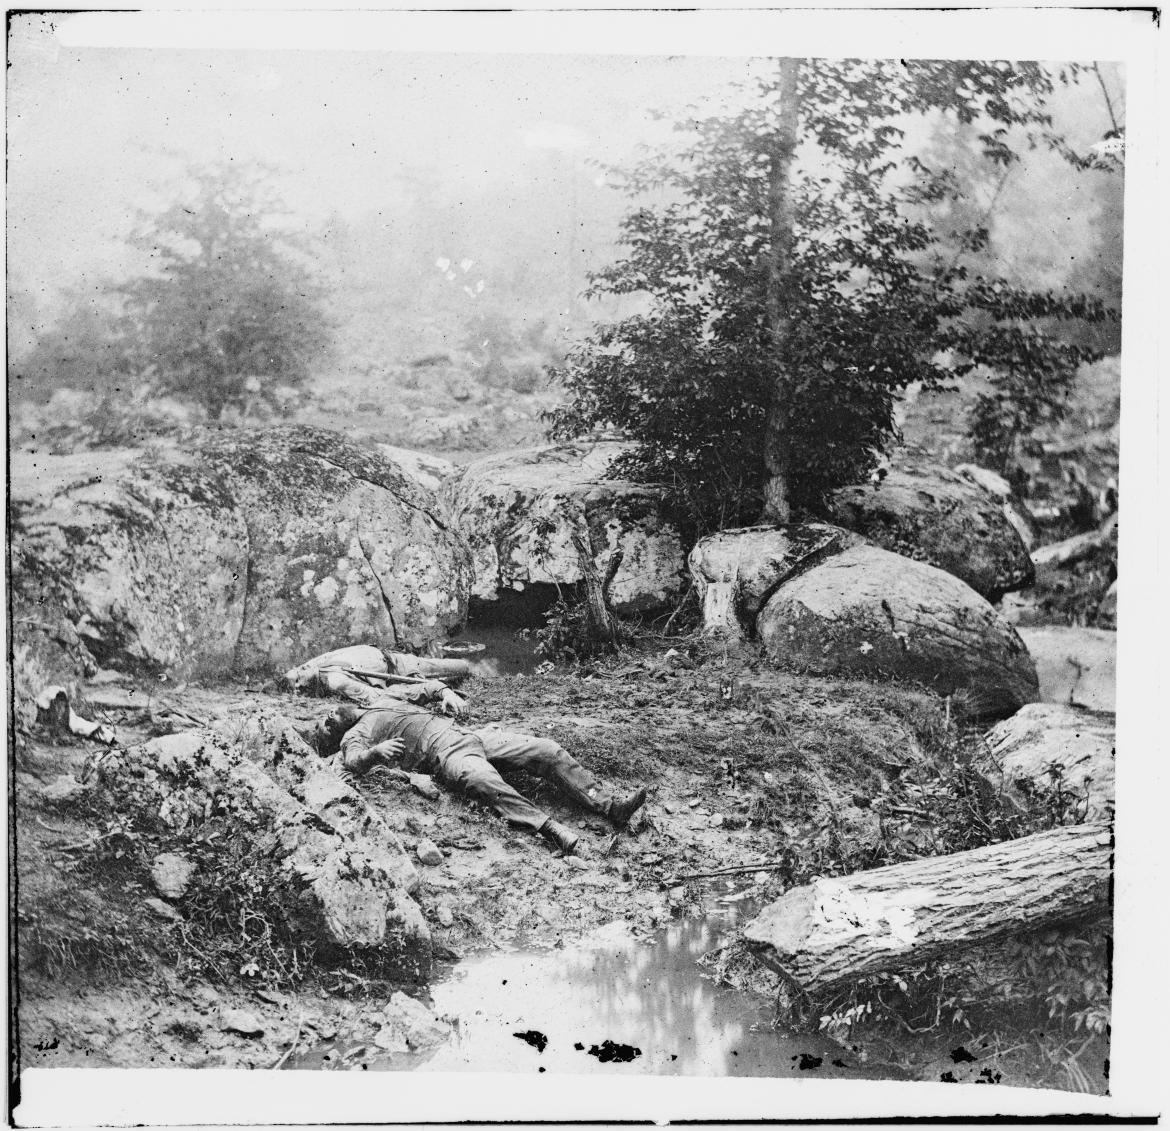 'Dead Confederate soldiers in the 'slaughter pen' at the foot of Little Round Top'